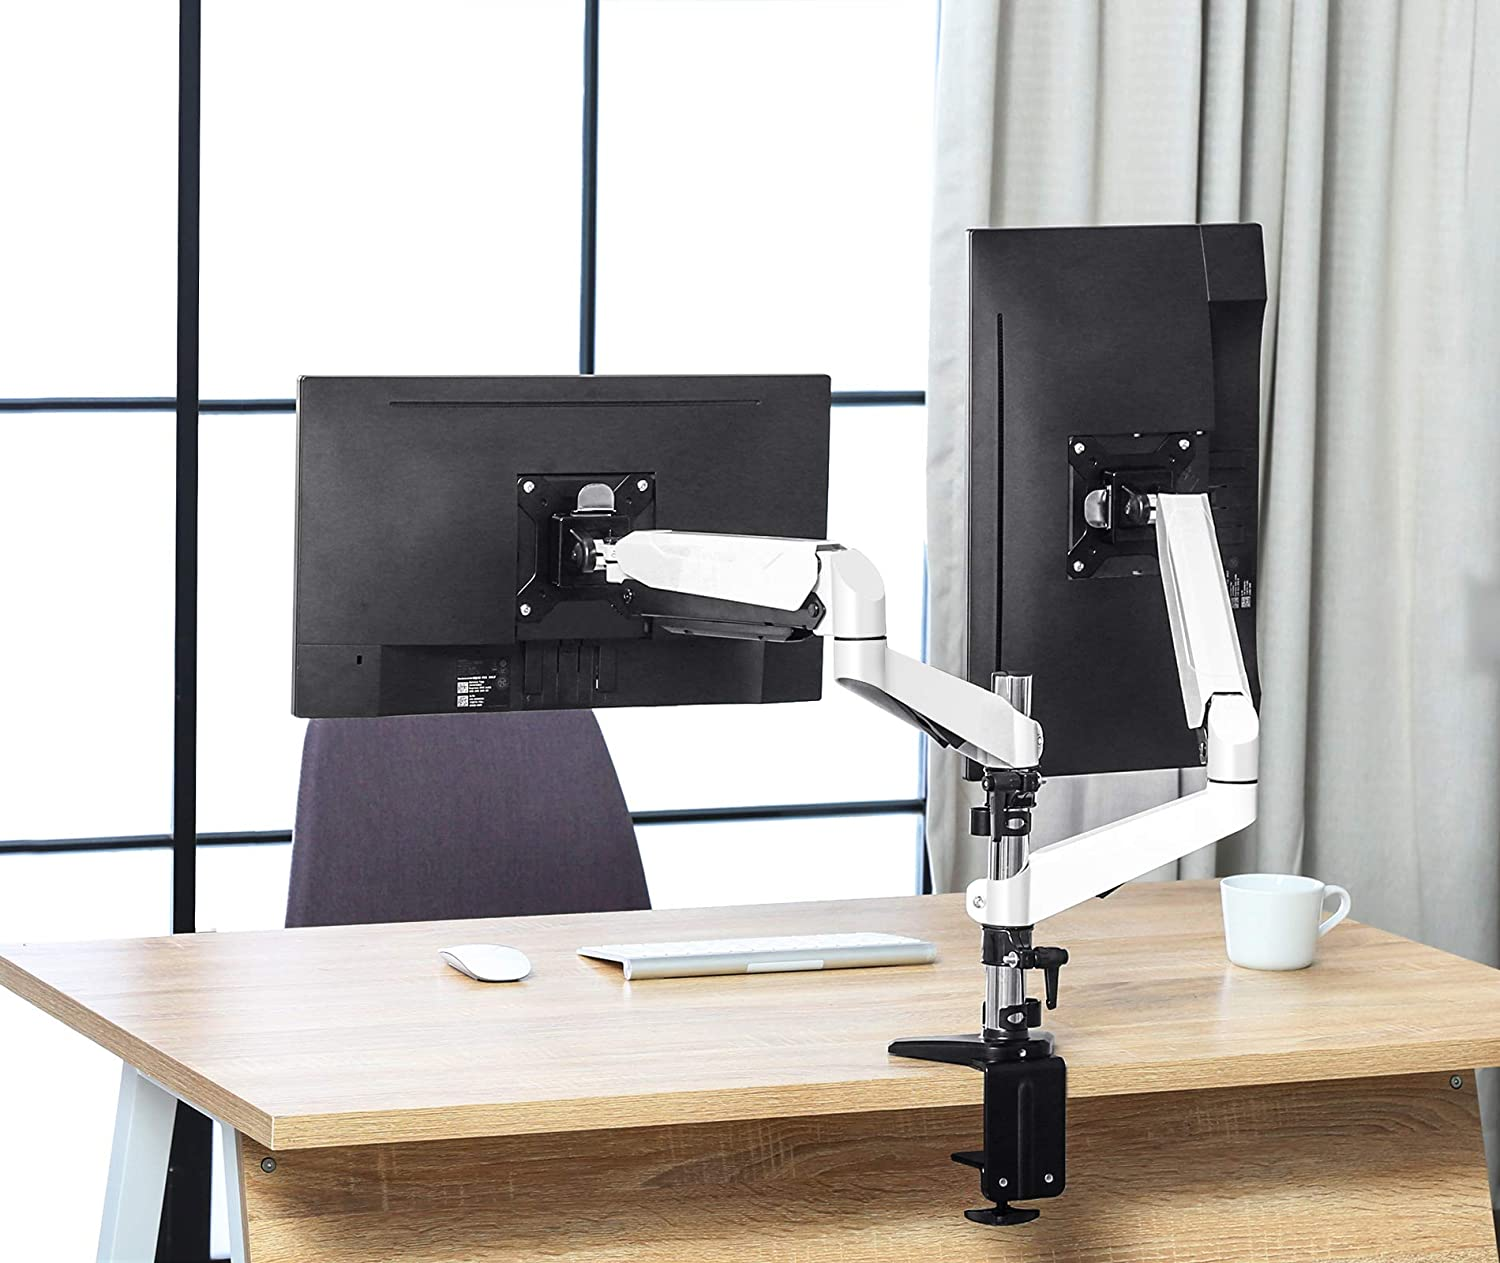 Gas Spring Powered Desktop Clamp Mount Full Motion Adjustable FITUEYES Dual Monitor Arm for 15 to 27 inch Screens Vesa 75-100 mm,180/° Tilt,360/° Rotation /& 180/° Swivel